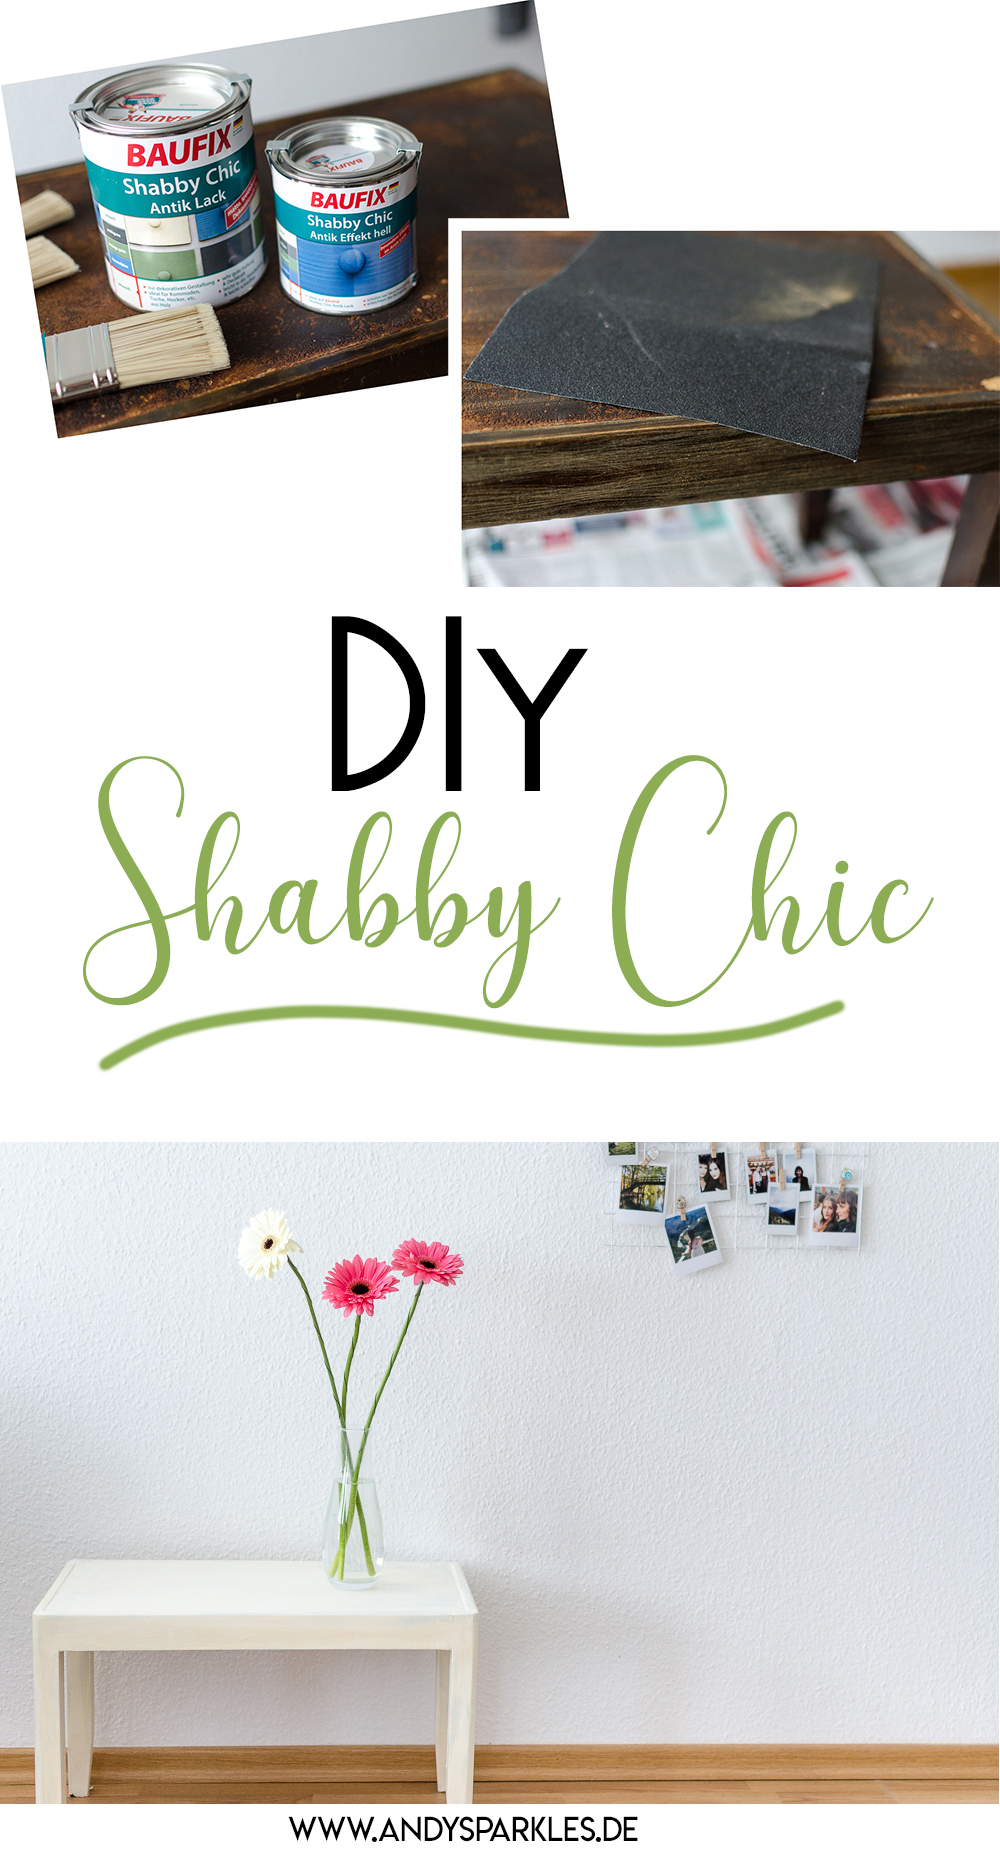 Shabby Chic DIY mit Baufix-Holzmöbel im Antik-Look-Upcycling-DIY Blog-andysparkles.de